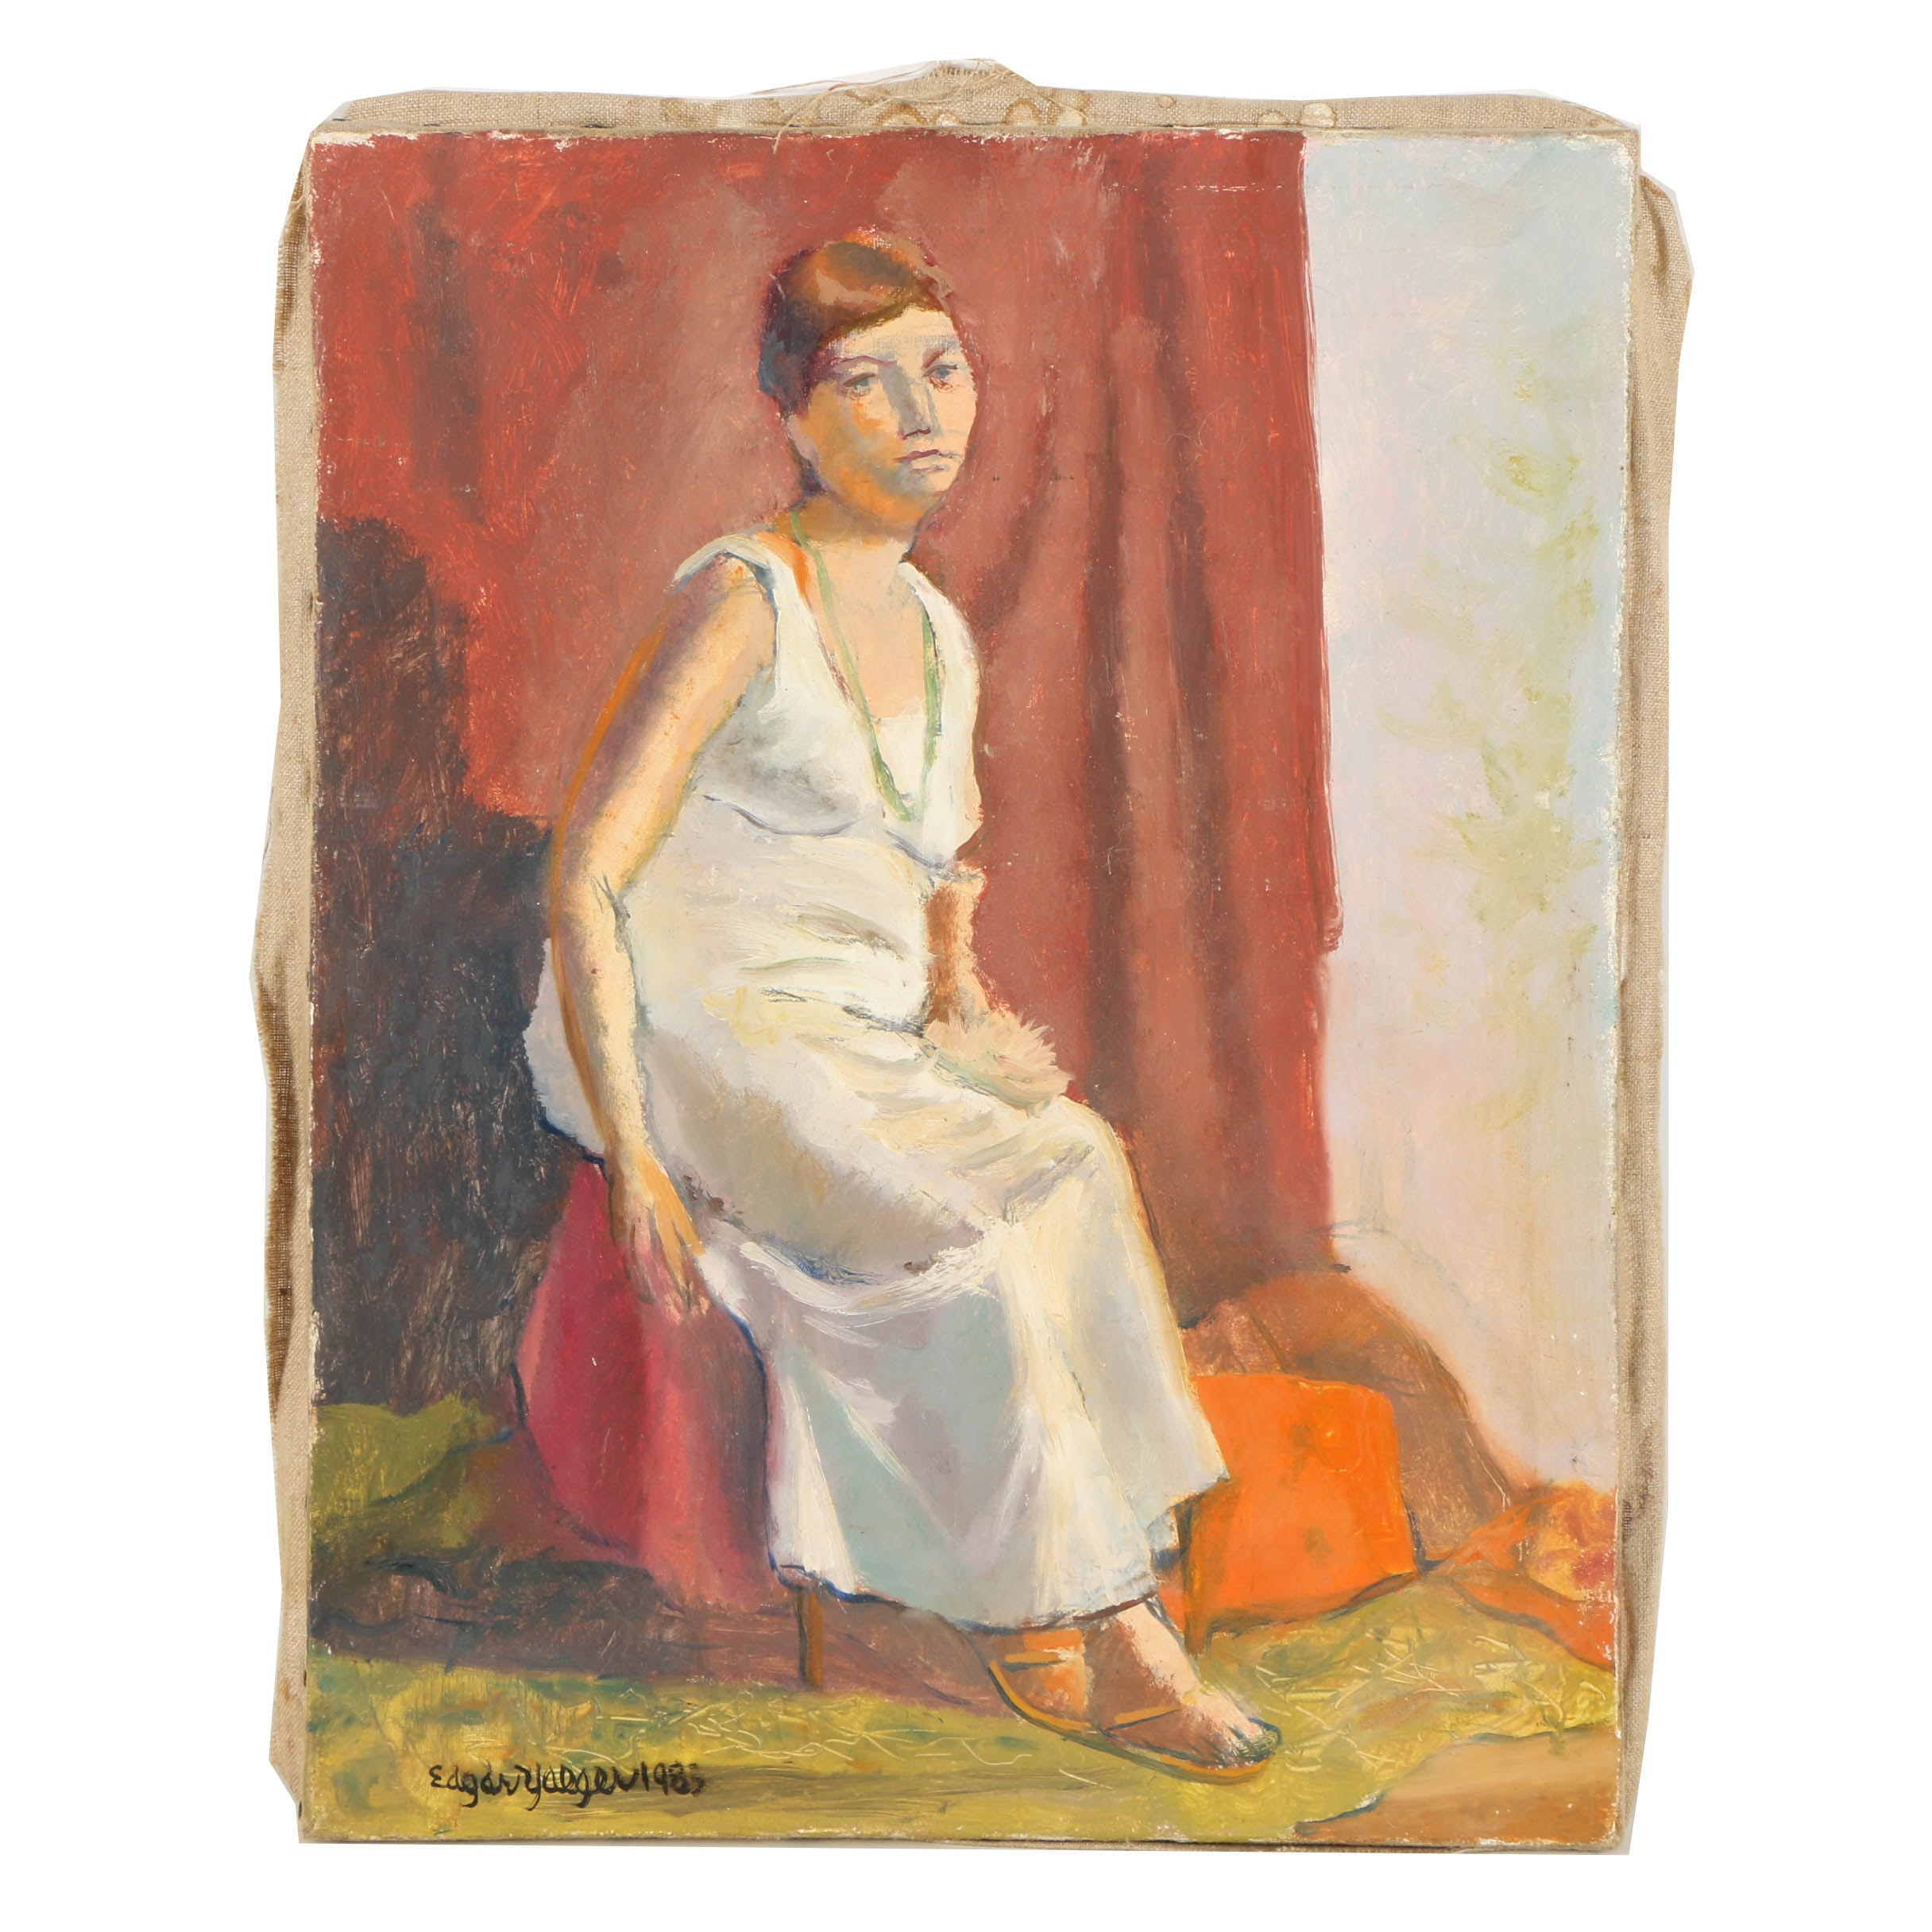 Edgar Yaeger Oil Painting on Canvas of a Woman in a White Dress